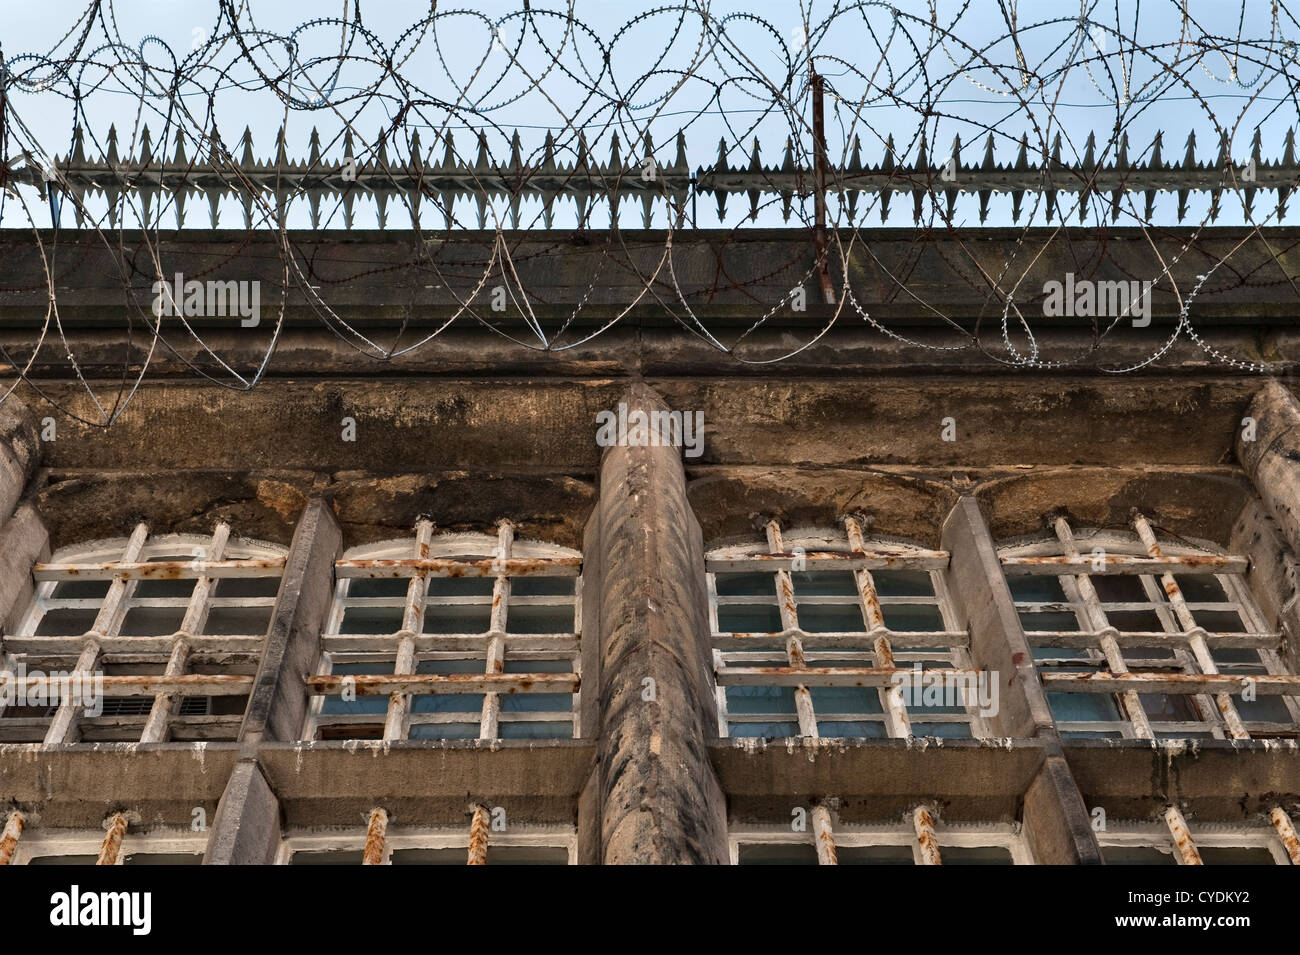 Wire Bars Stockfotos & Wire Bars Bilder - Alamy